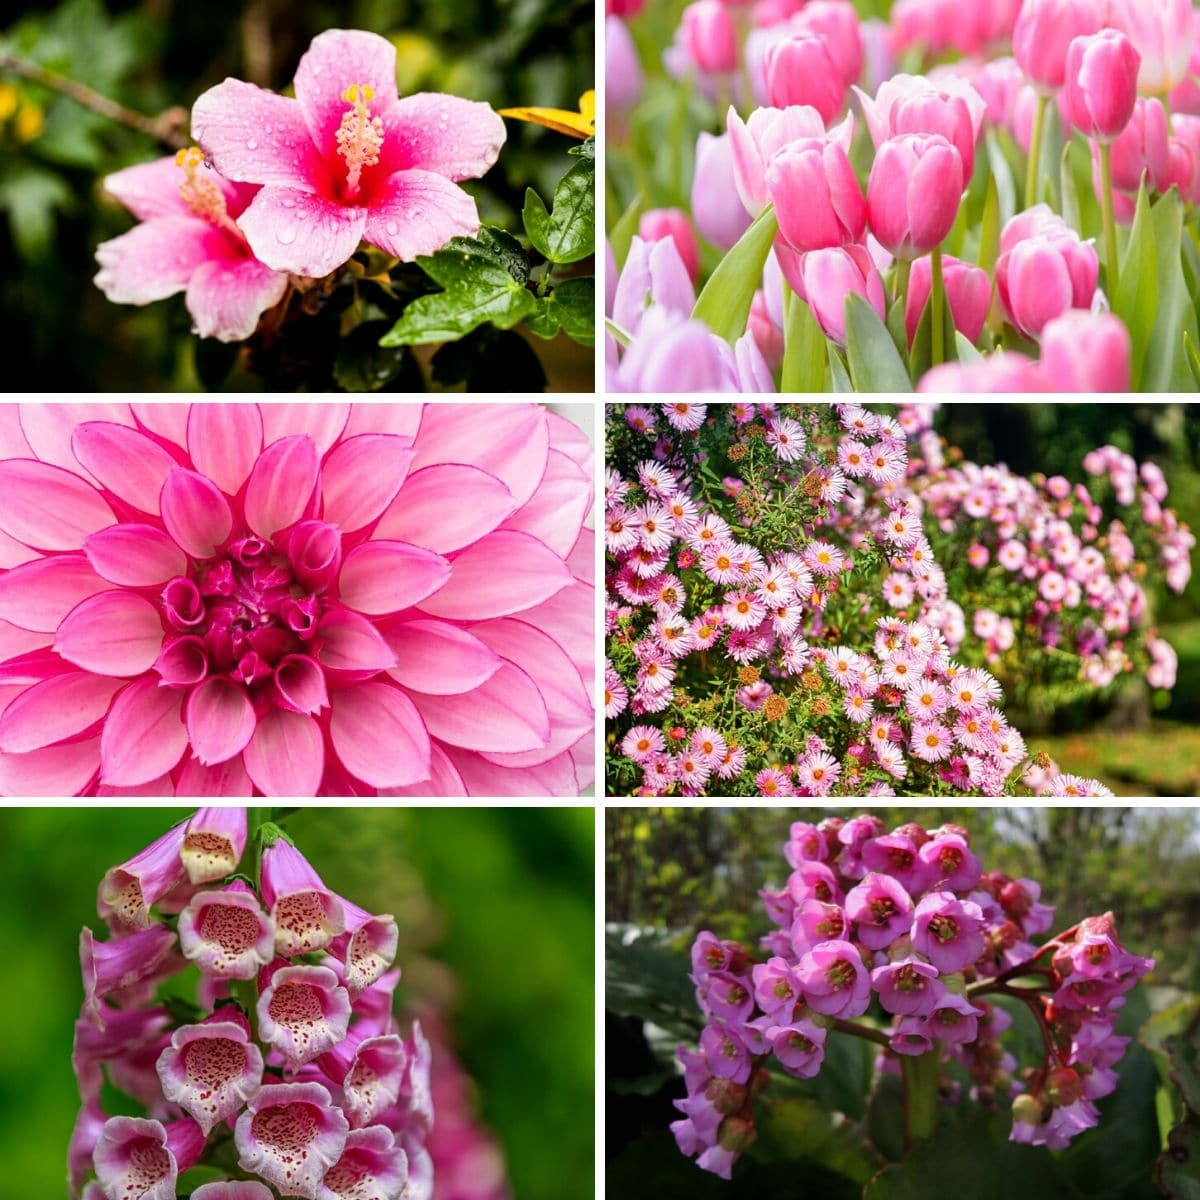 Collage photo of six pink perennial flowers from the article